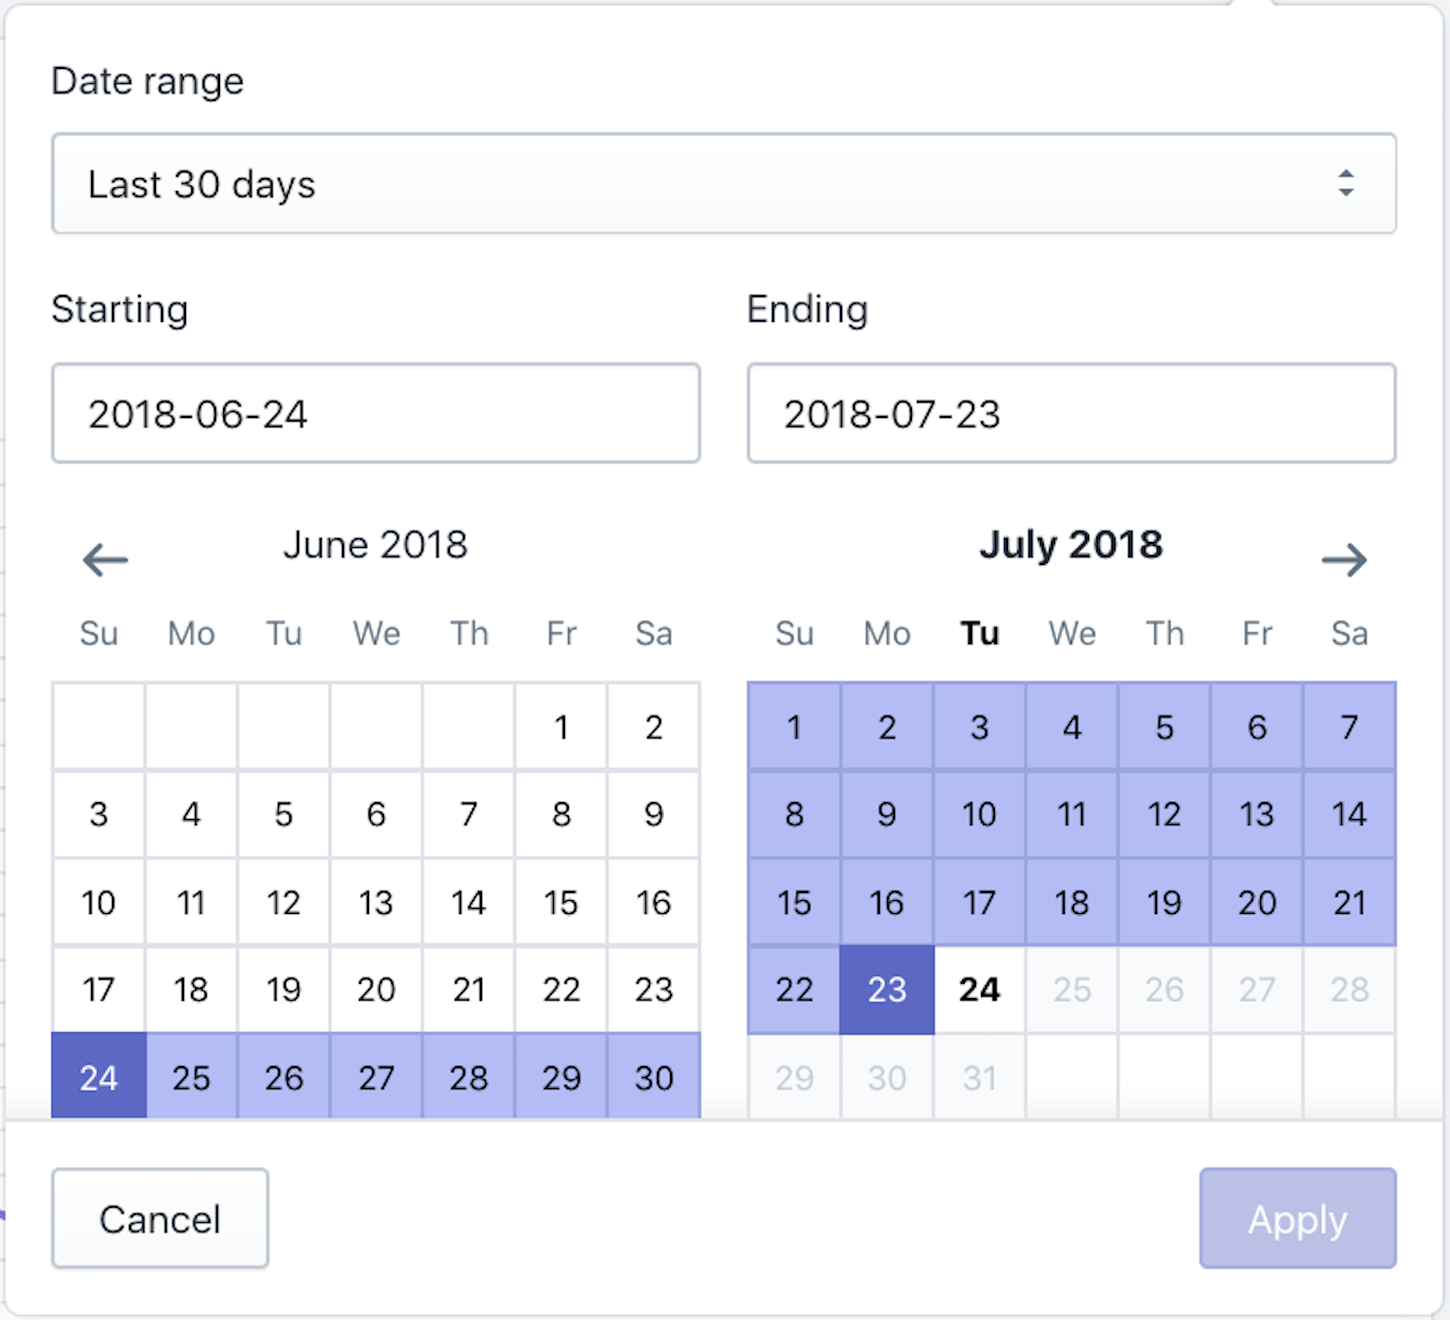 upgrade to polaris: datepicker